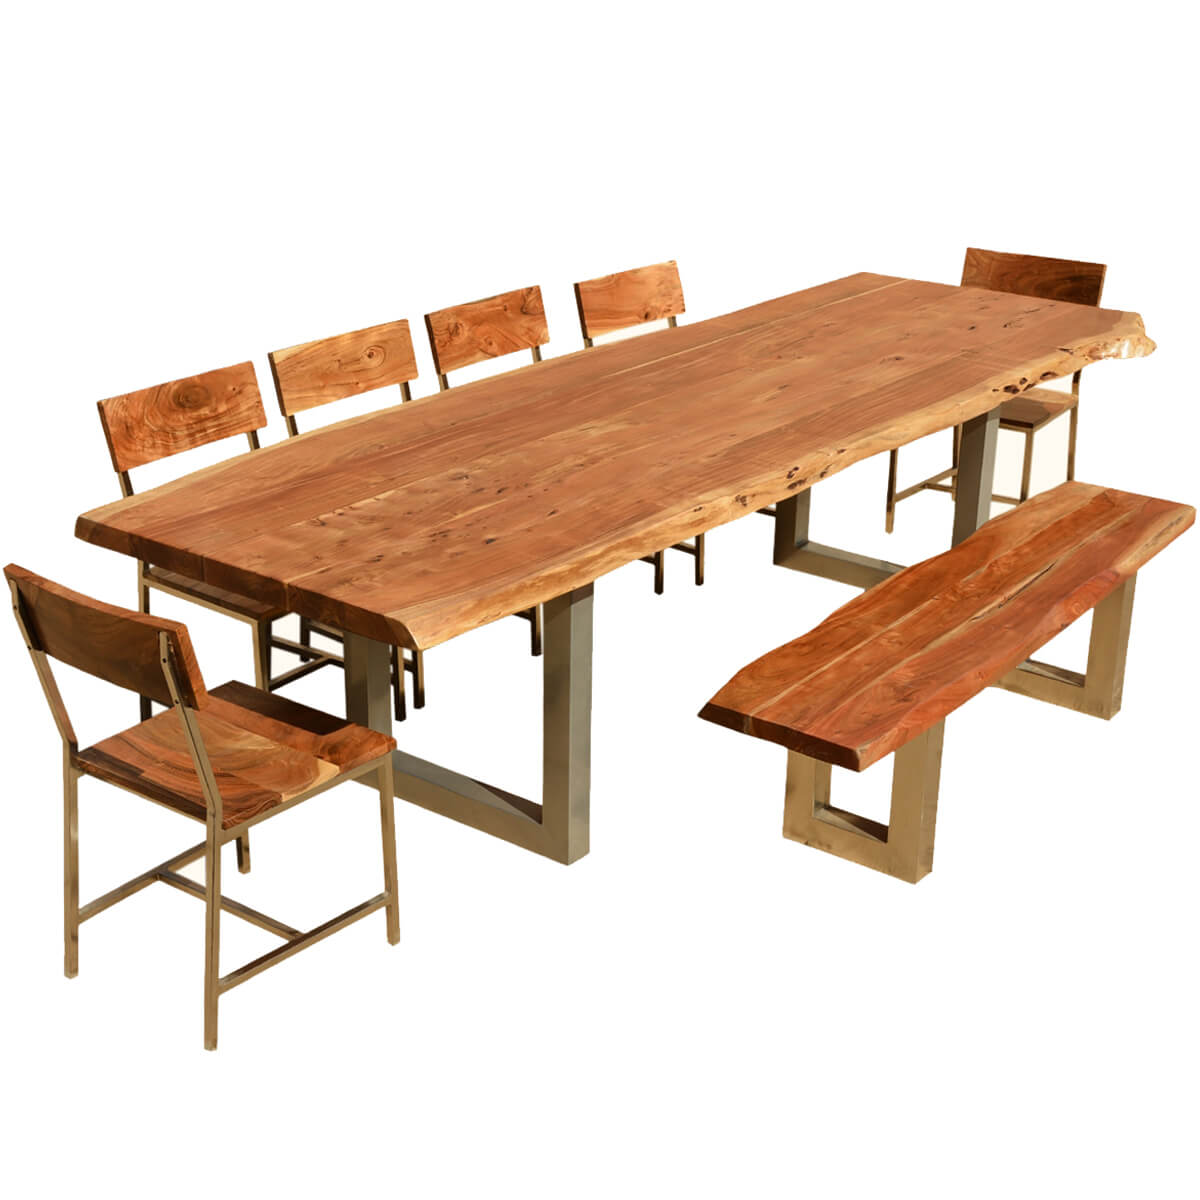 117 live edge dining table w 6 chairs bench acacia wood iron. Black Bedroom Furniture Sets. Home Design Ideas